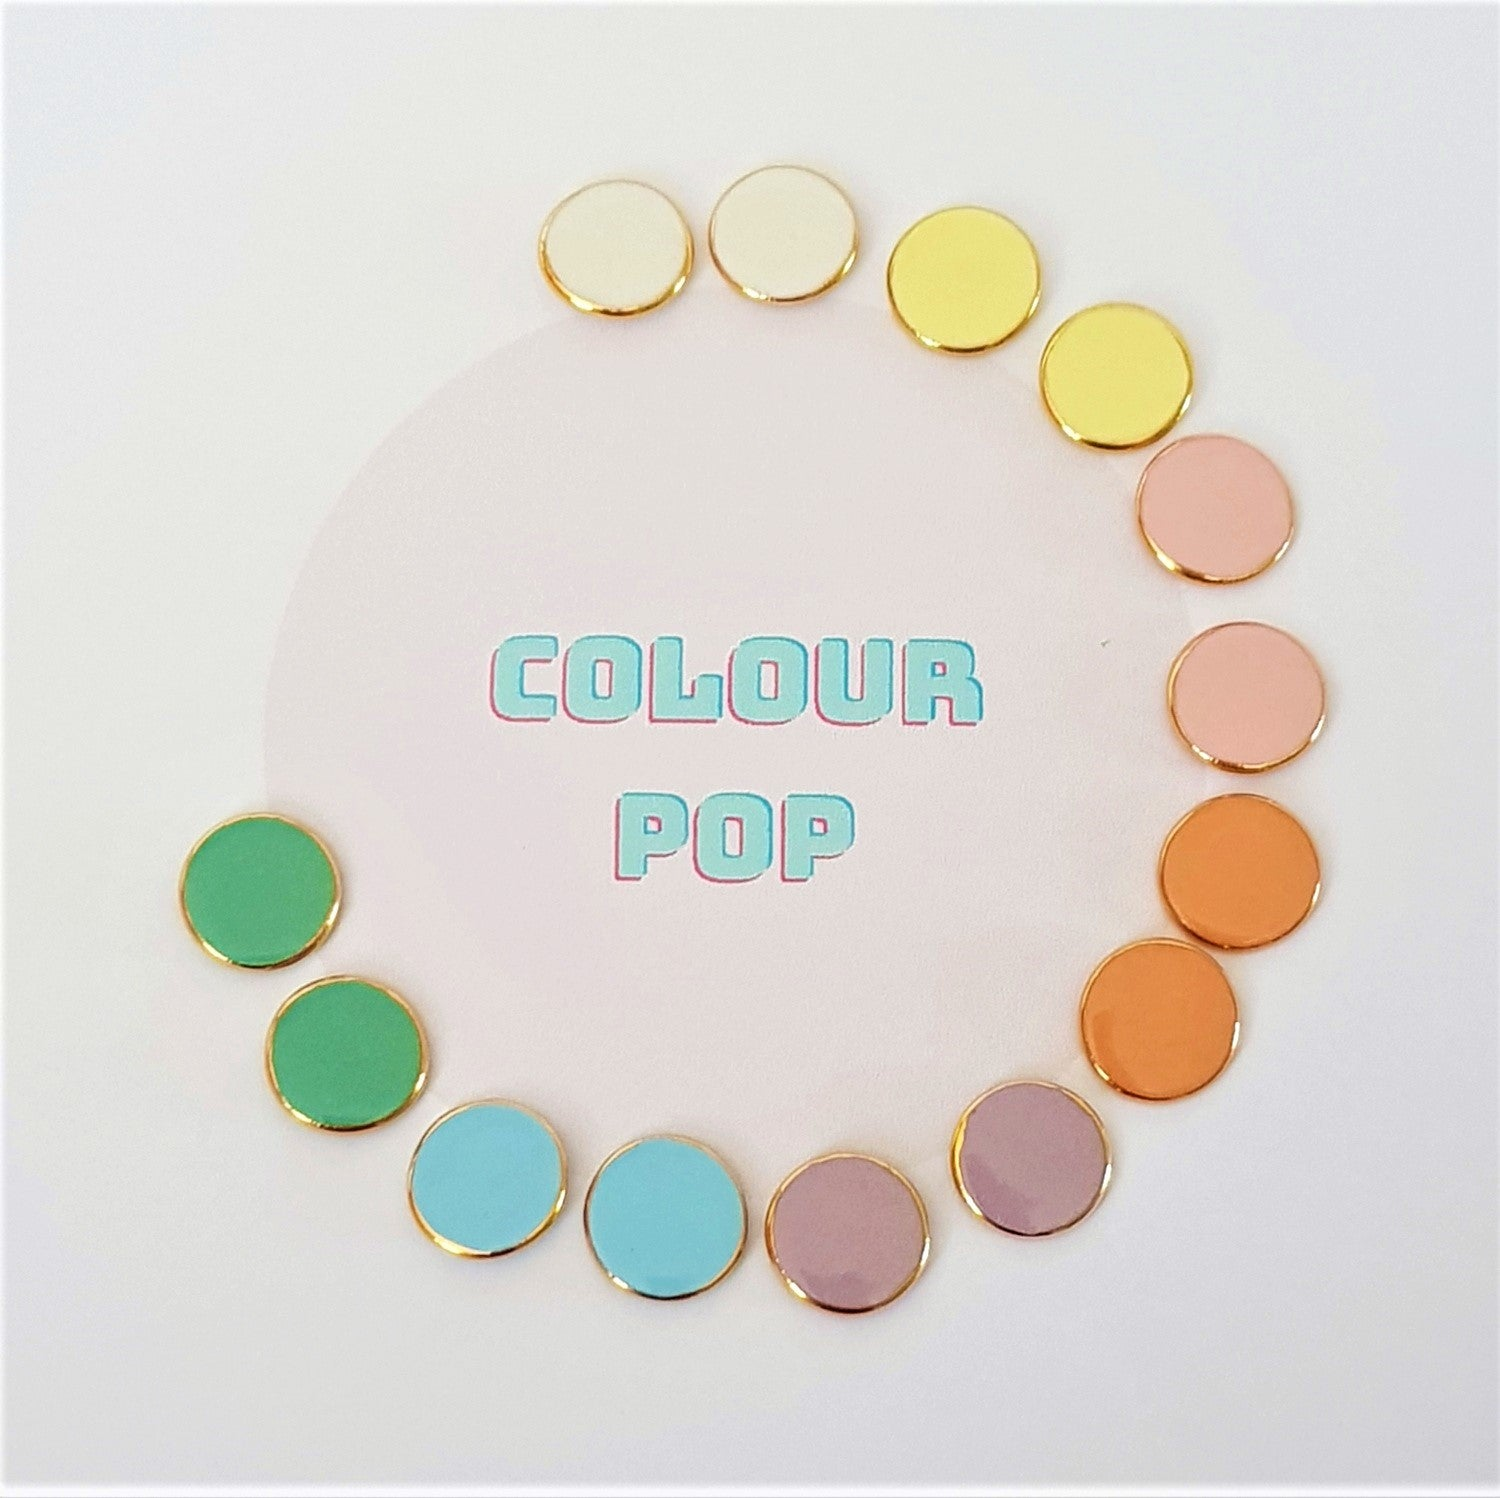 Colour pop tiny studs in pastels with 22 kt gold